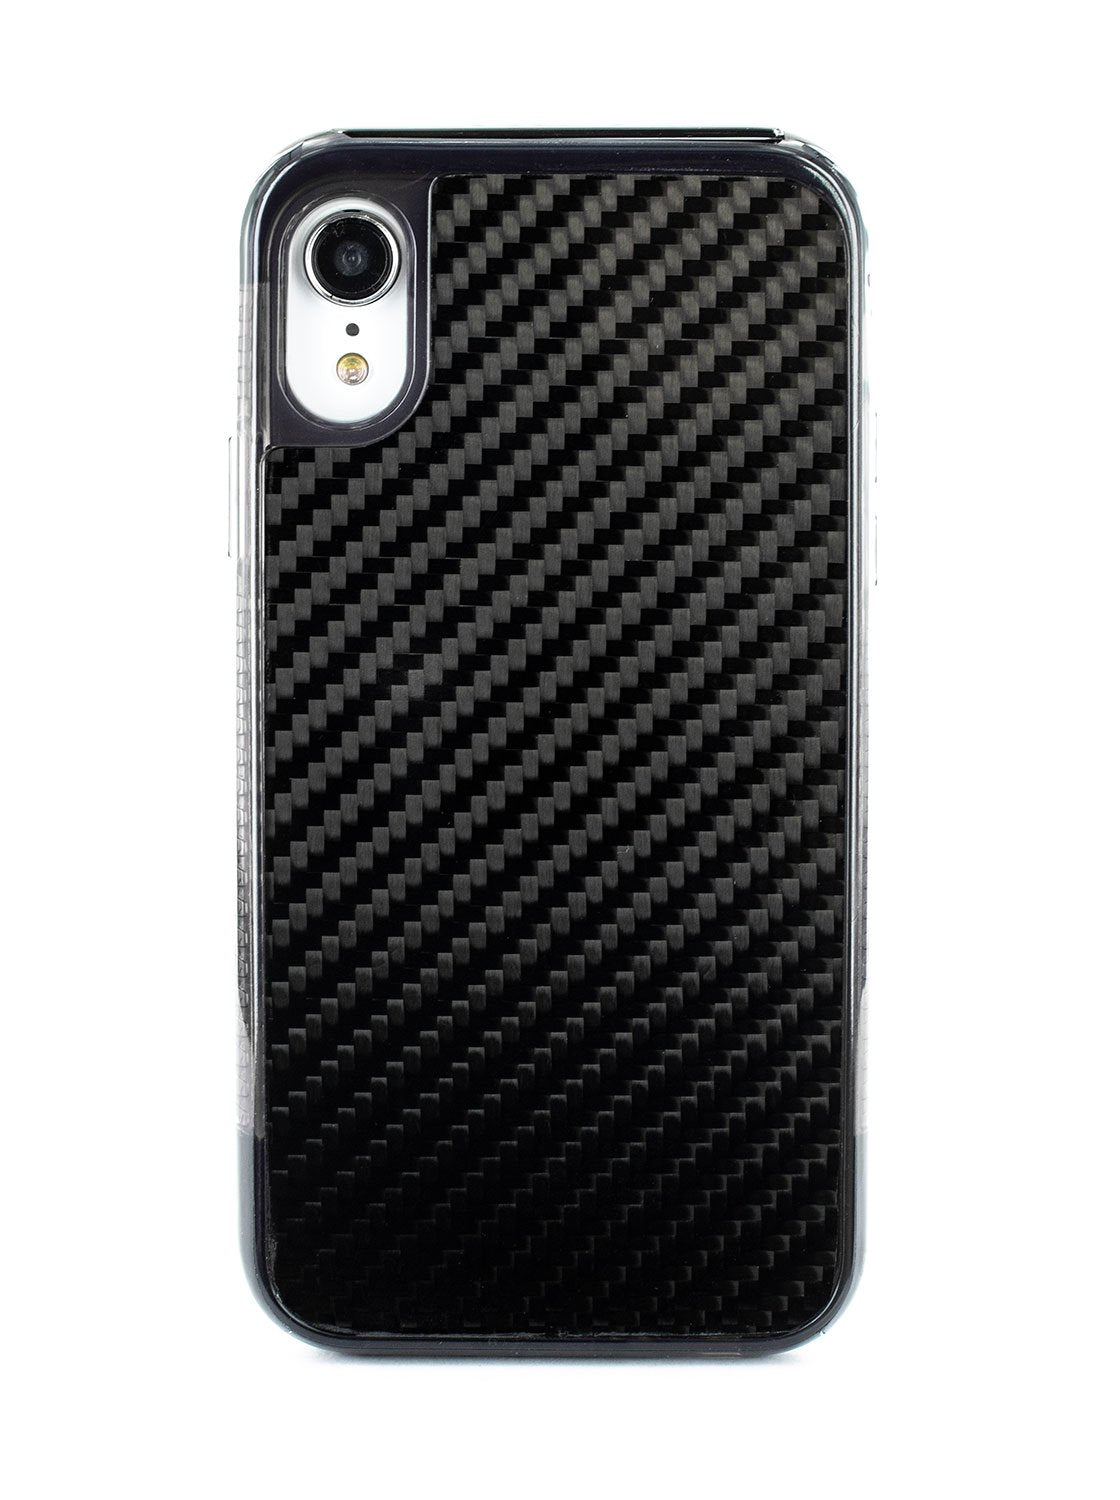 Hero image of the Proporta Apple iPhone XR phone case in Black